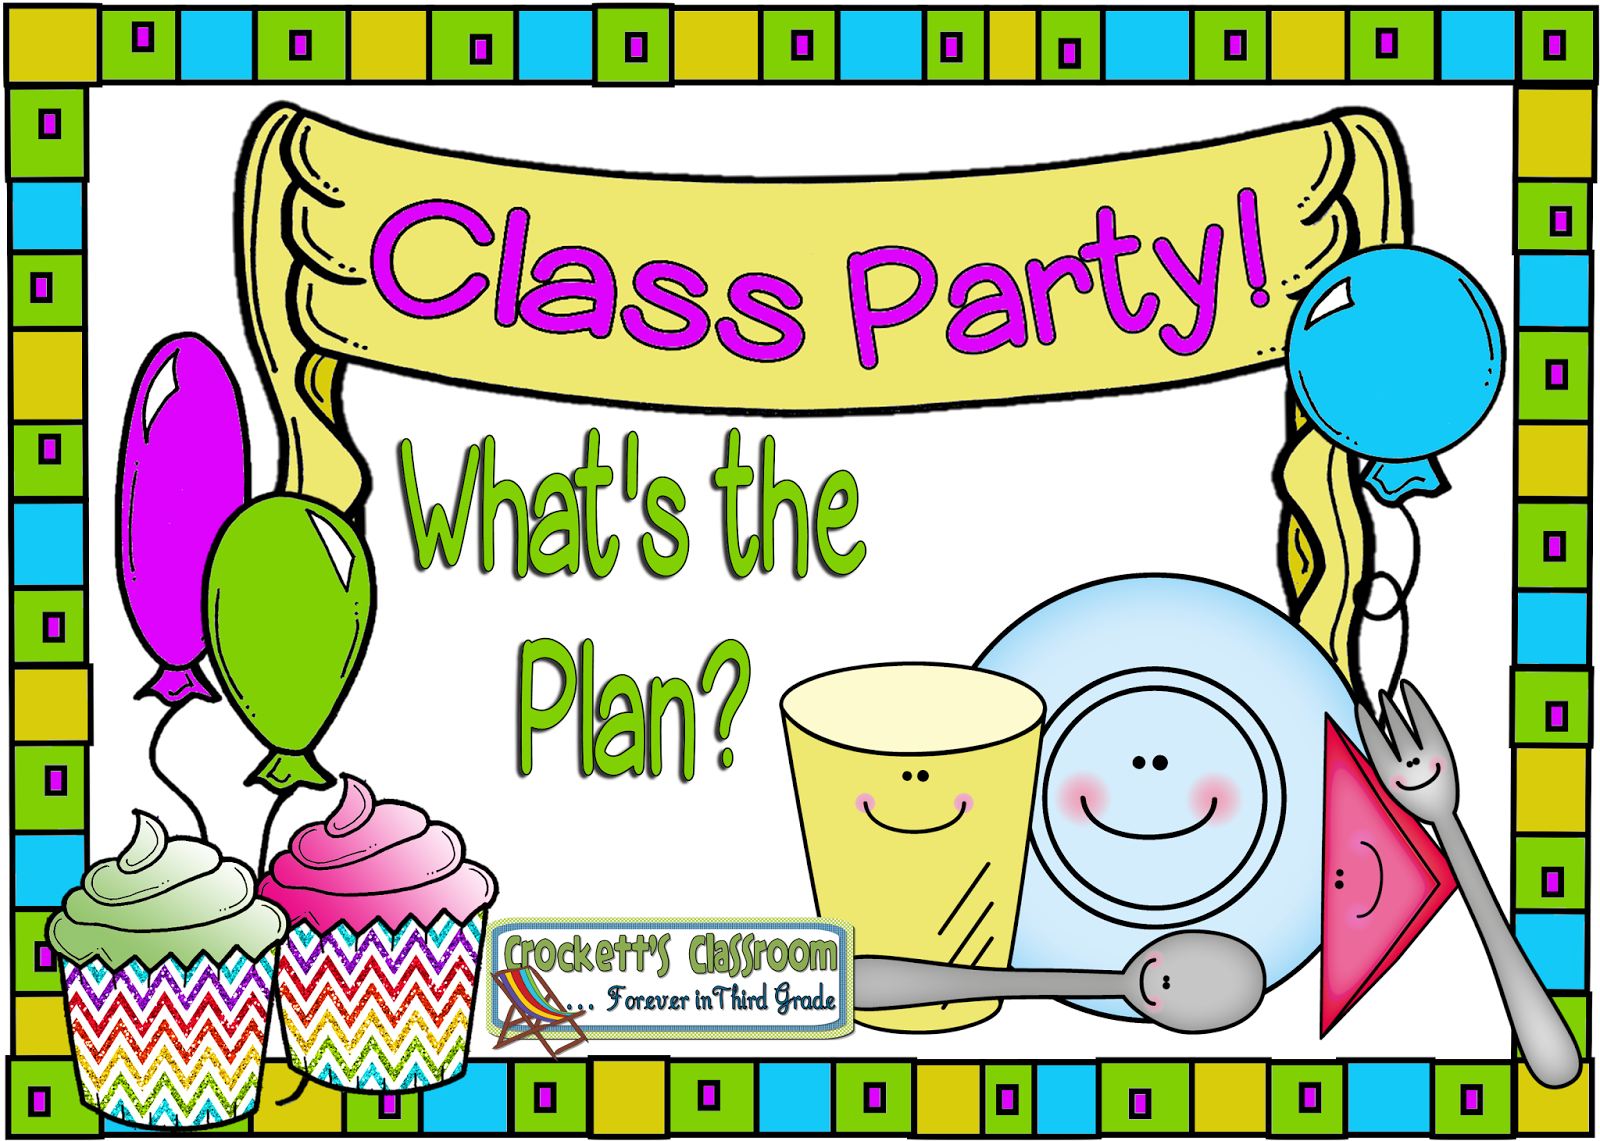 Classroom Birthday Party ~ Crockett s classroom forever in third grade let students